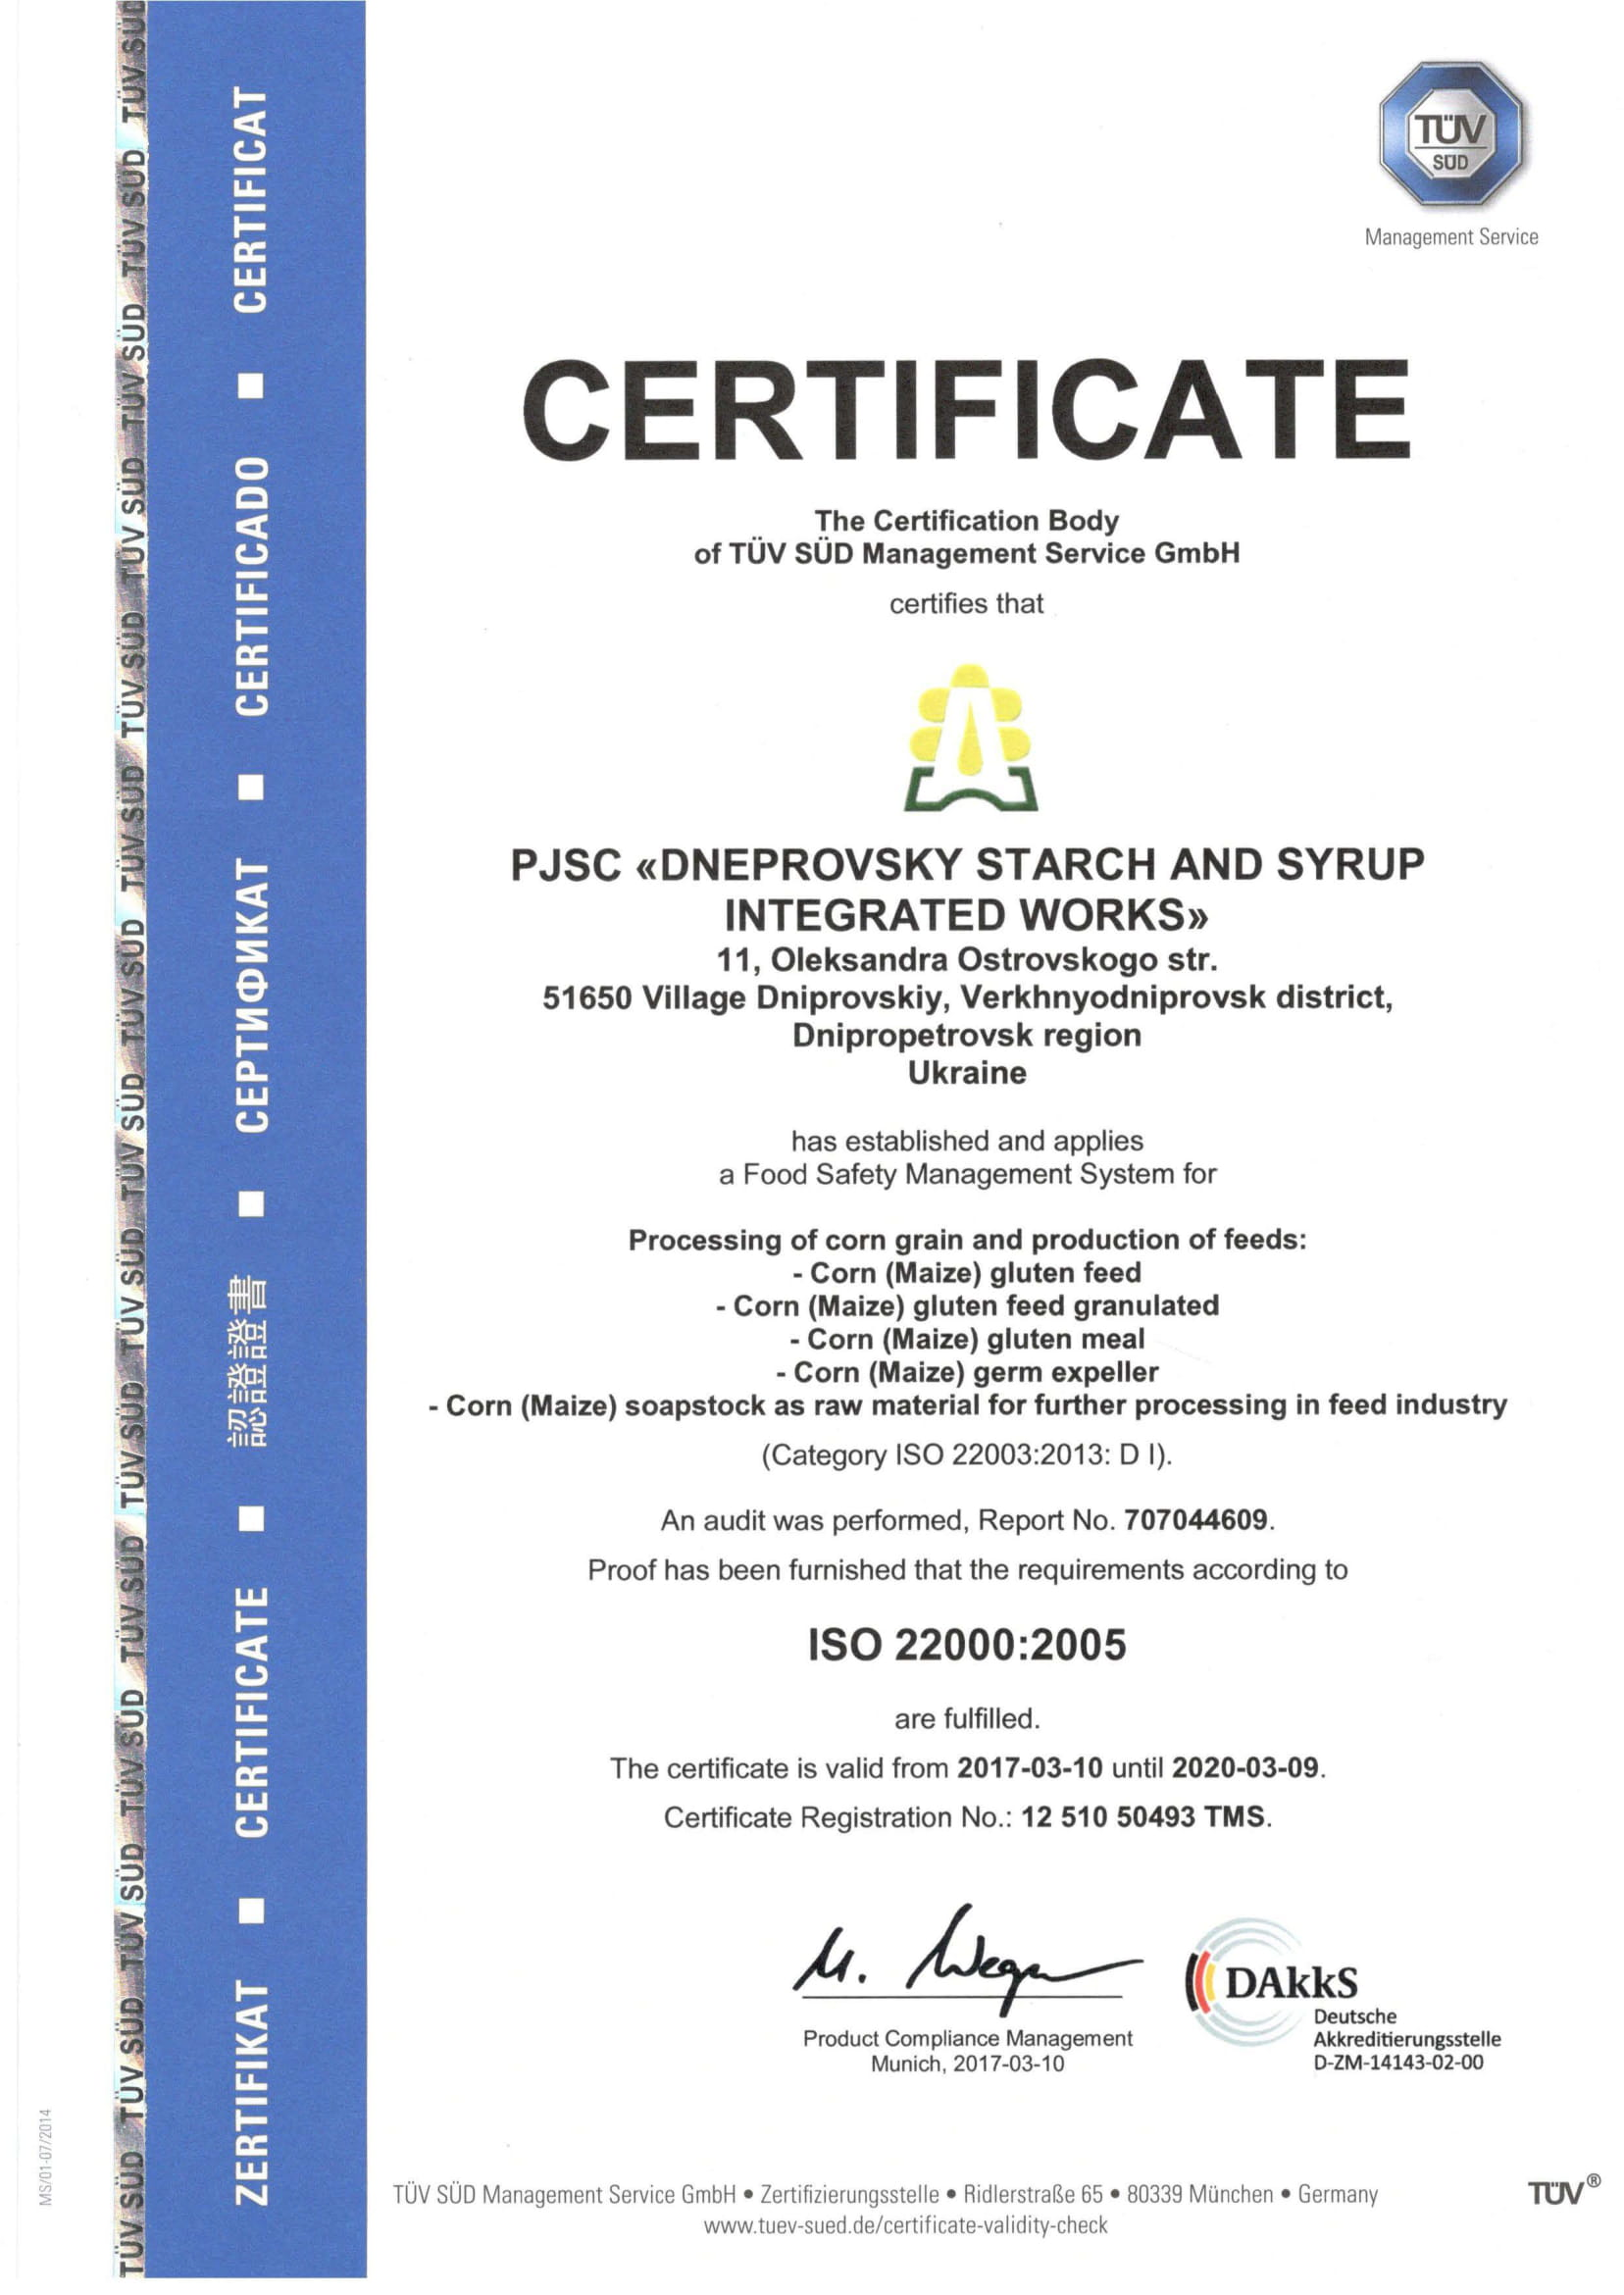 ISO 22000 PrJSC Dneprovsky starch and syrups integrated works